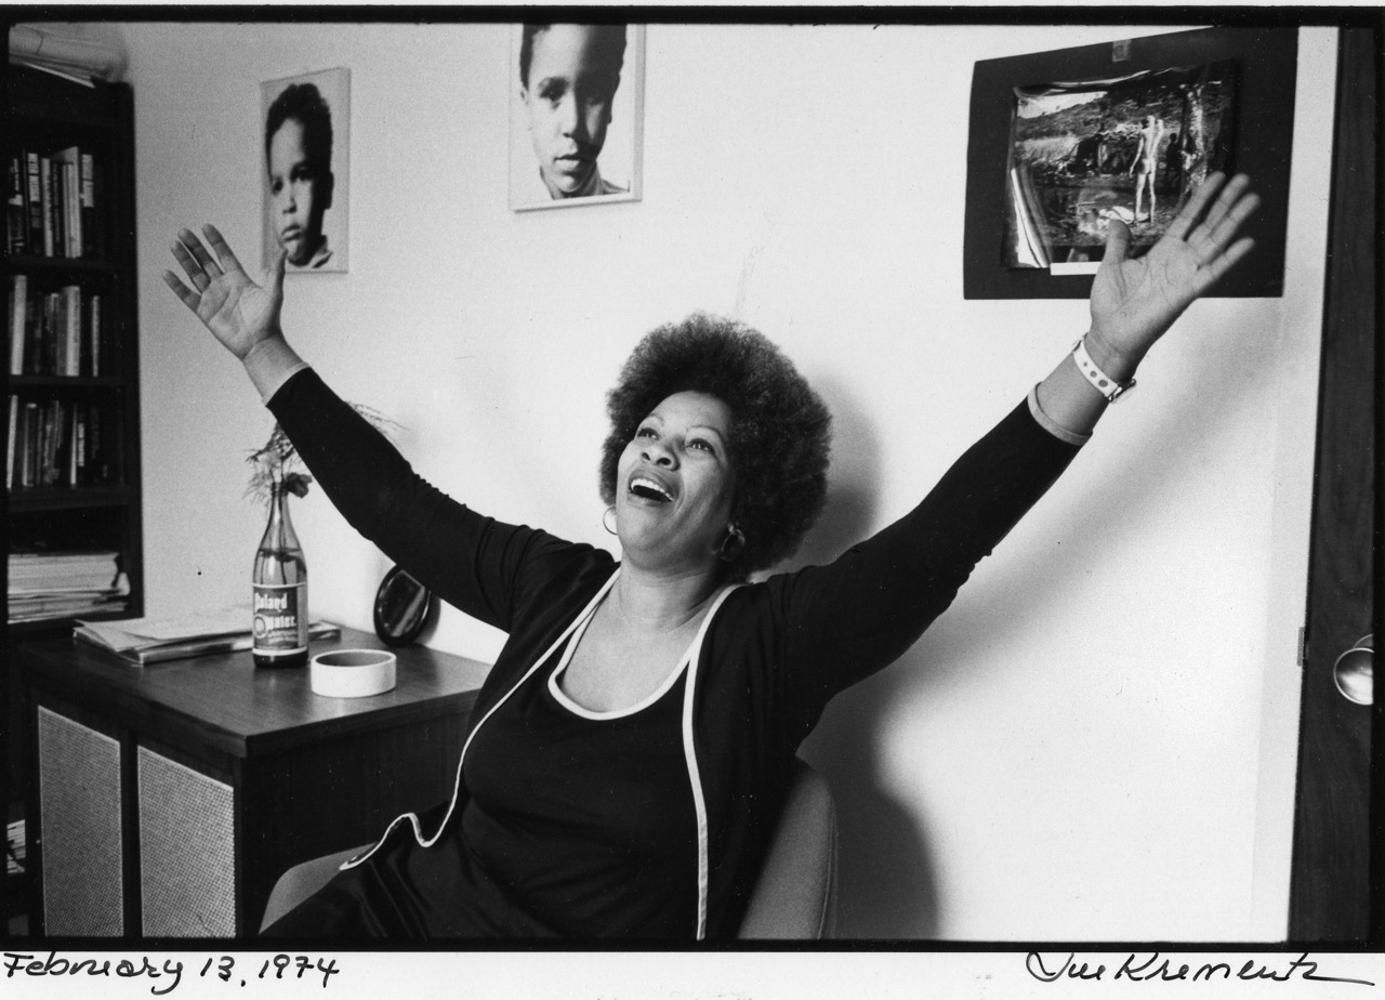 """Portrait of Toni Morrison at Random House in New York 1974, by Jill Krementz. Used under fair use guidelines  Ellah Wakatama Allfrey would carry this photo of Toni Morrison with her from desk to desk. She describes the effect of the gentle waves of her hair and her outspread arms """"I looked at her and knew that I was not only possible, but necessary."""" There's an interesting thought to be explored here on how images or artefacts can store a galvanising power for our purpose quests."""